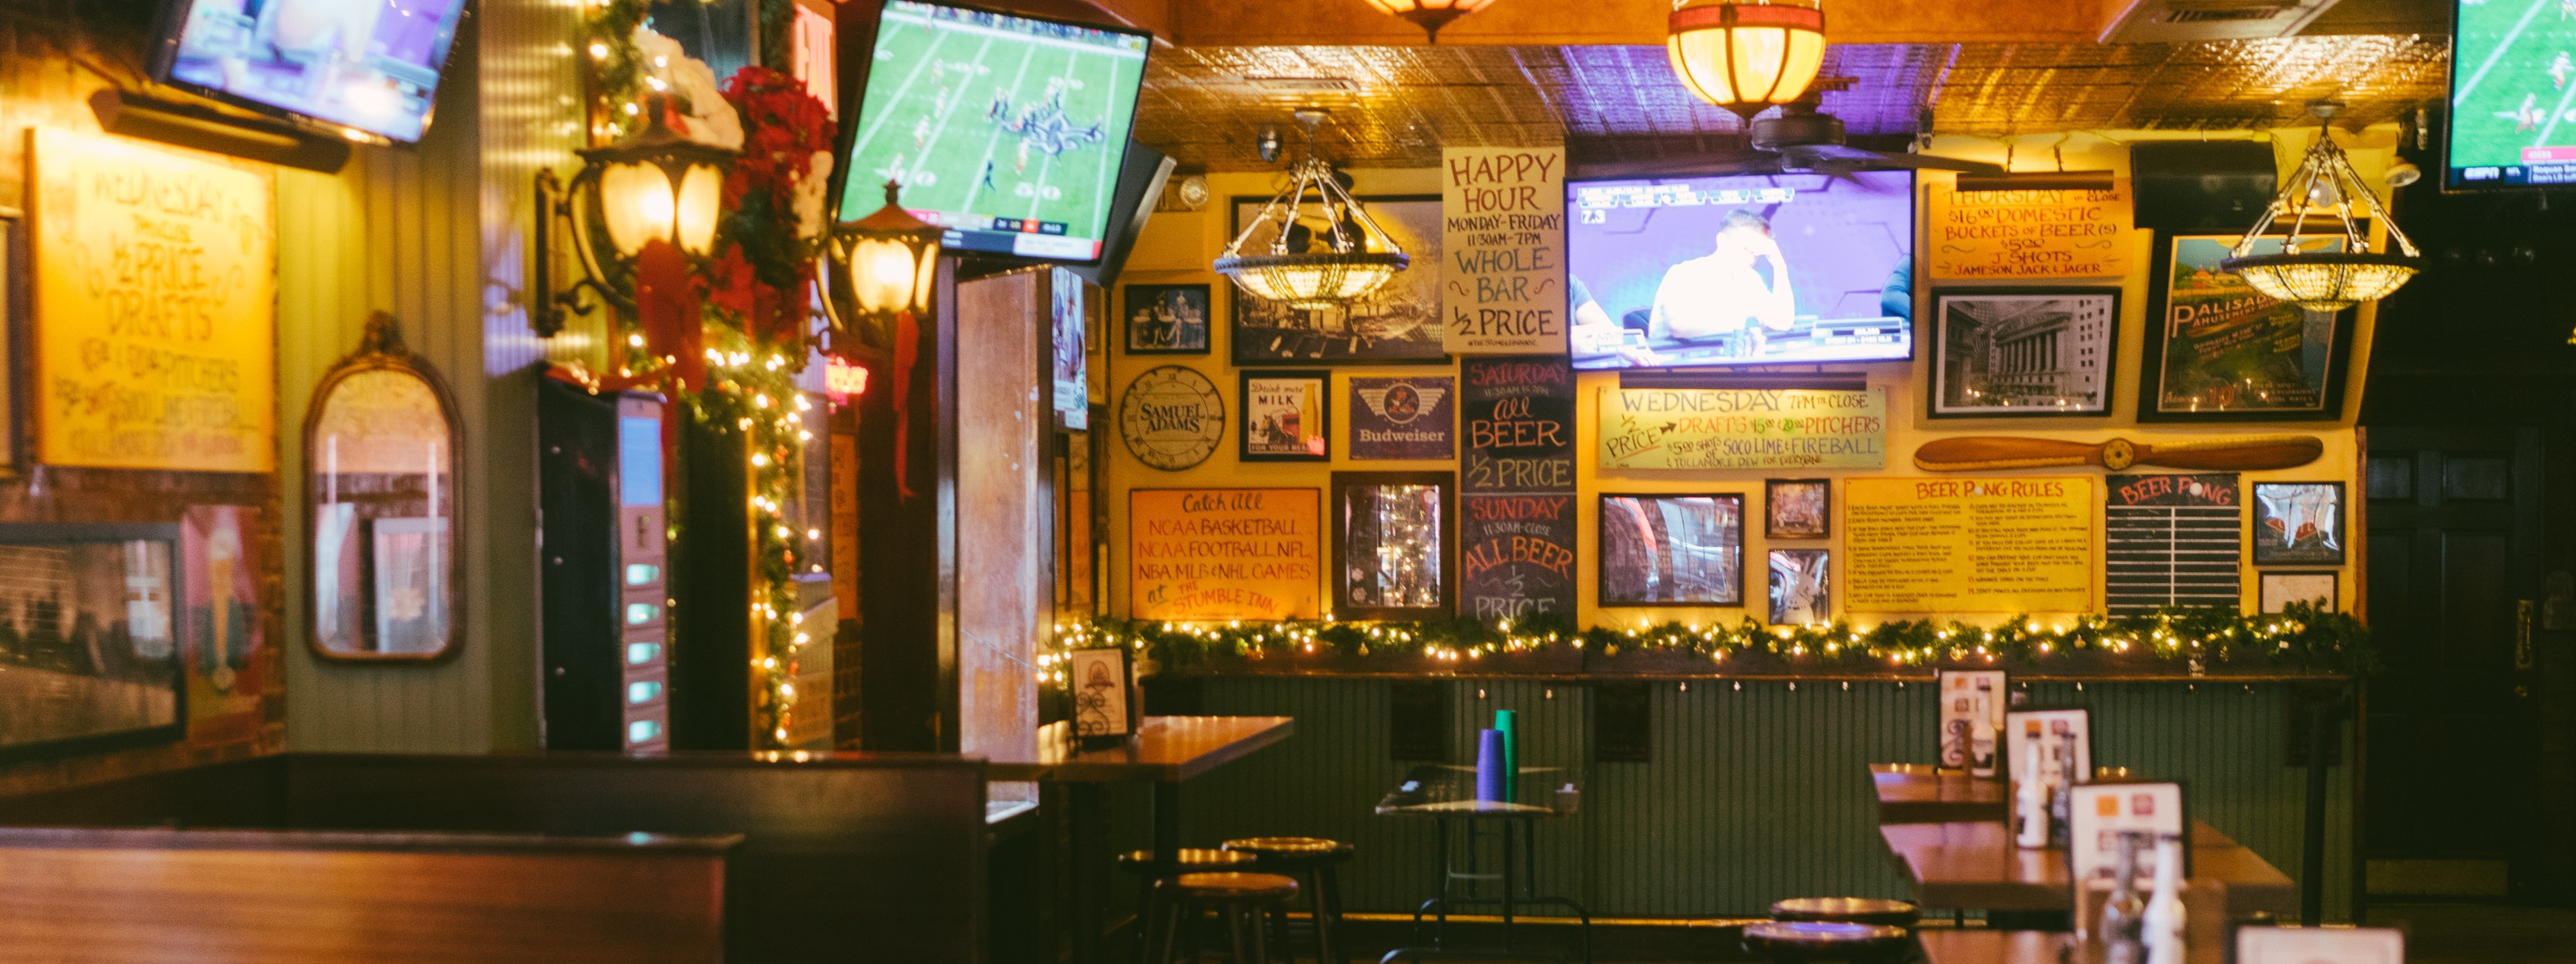 The Best Sports Bars In Nyc New York The Infatuation